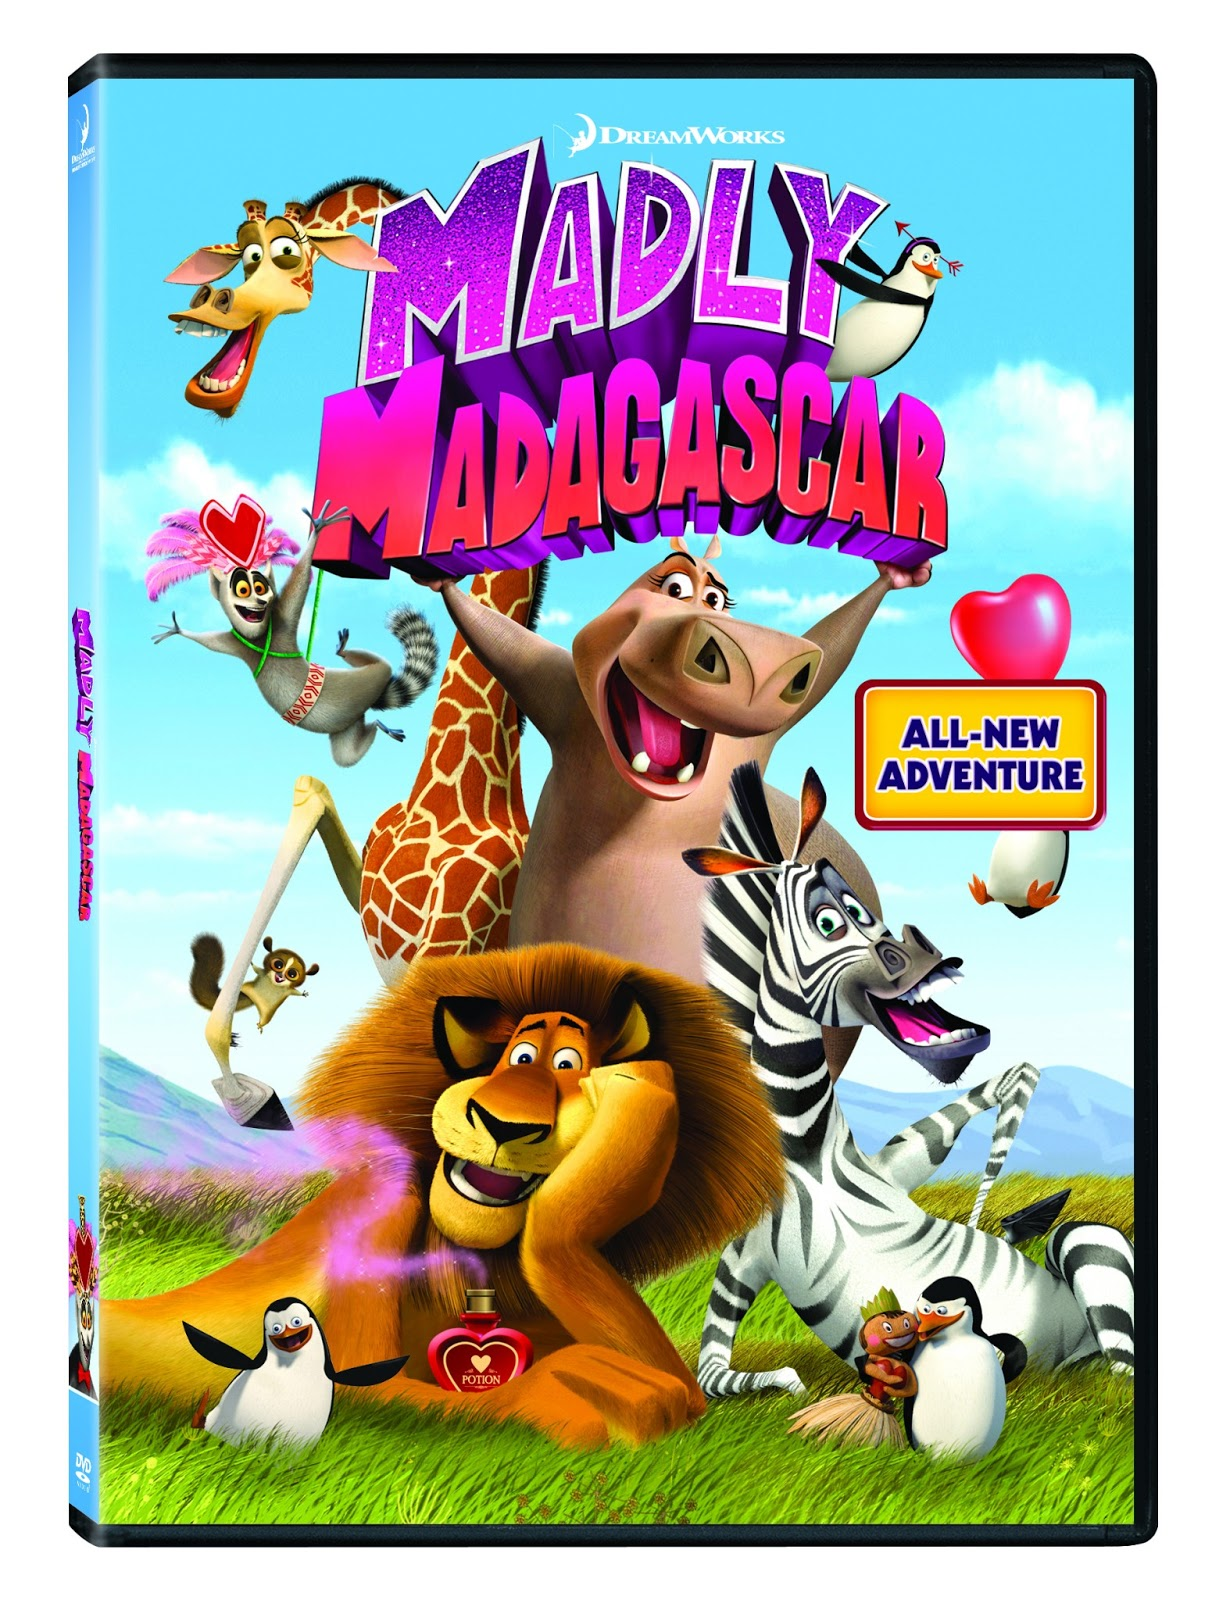 Madly Madagascar on DVD now for Valentine's Day | Frugal Family Tree